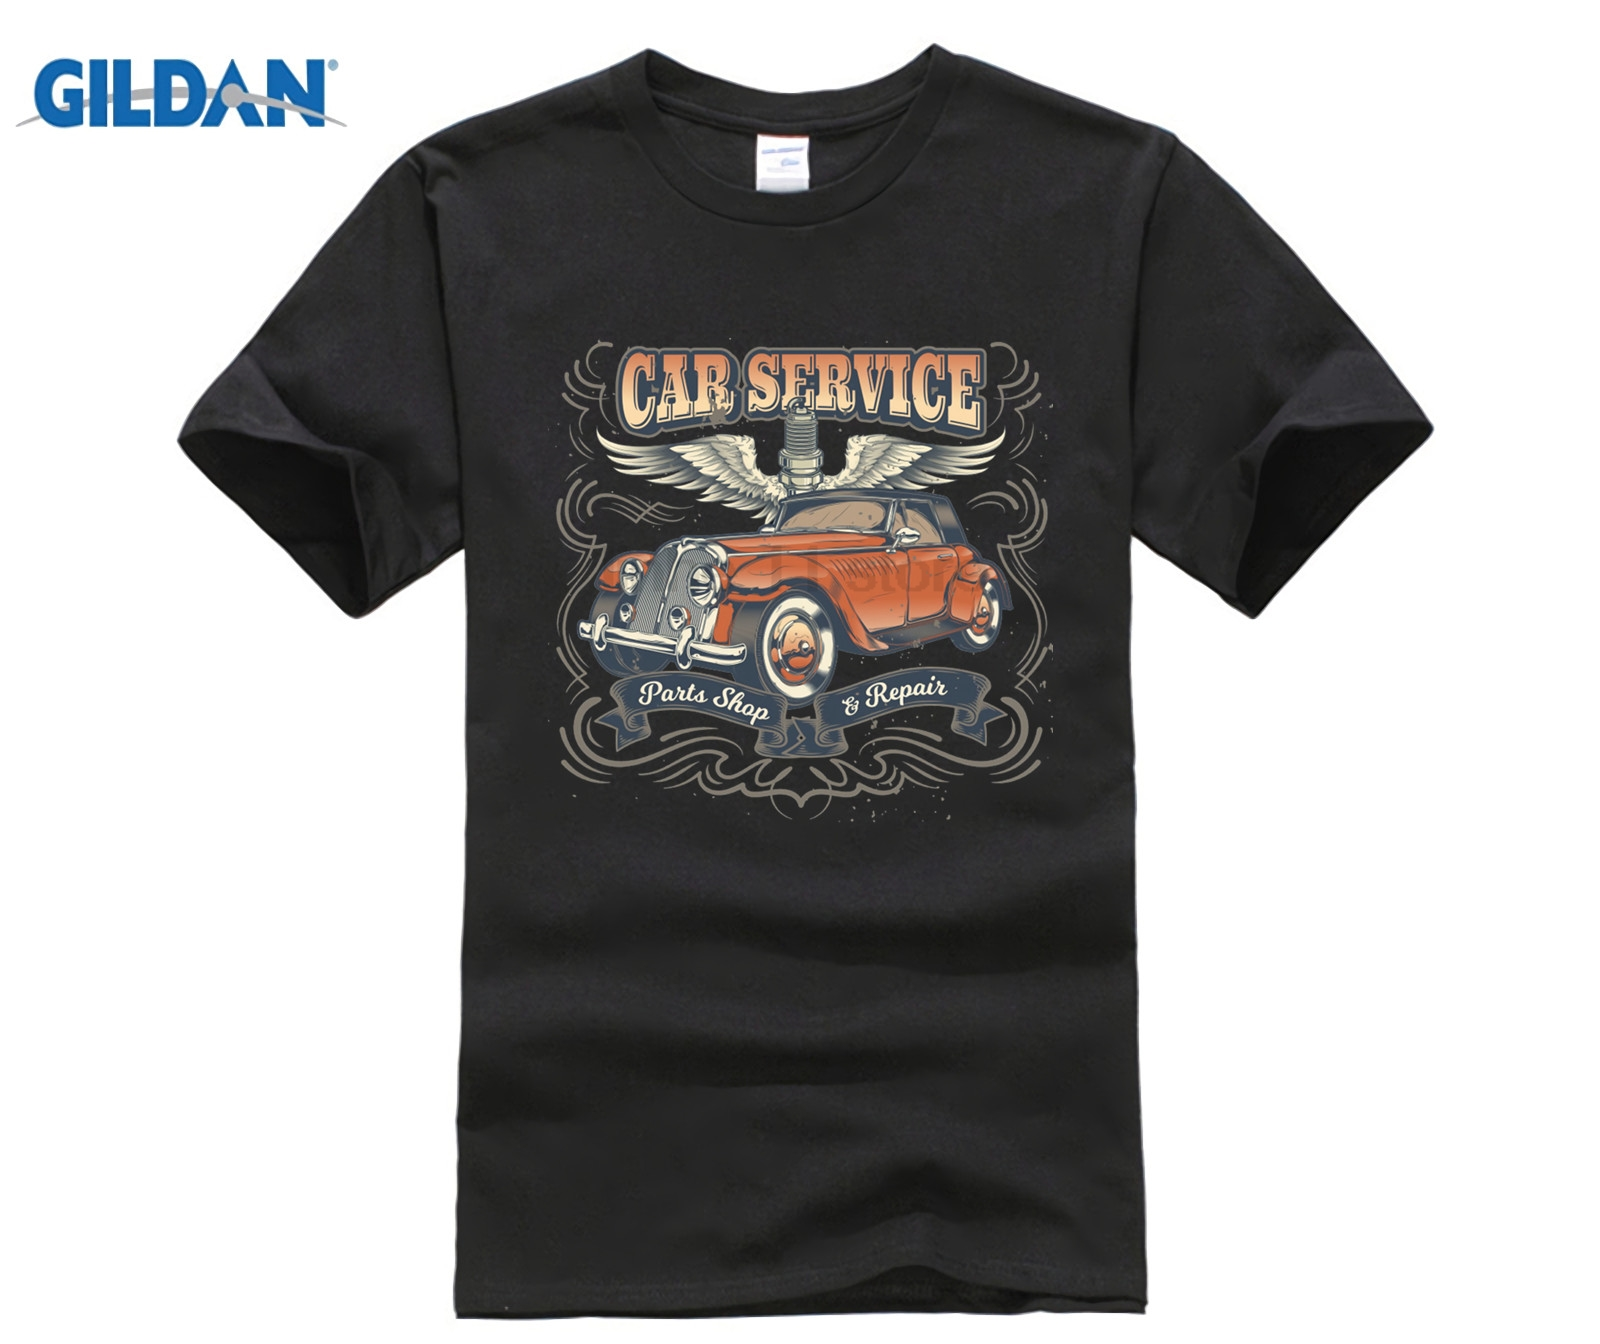 GILDAN Car Service Mechanics Classic Auto T-Shirt Hot Womens T-shirt